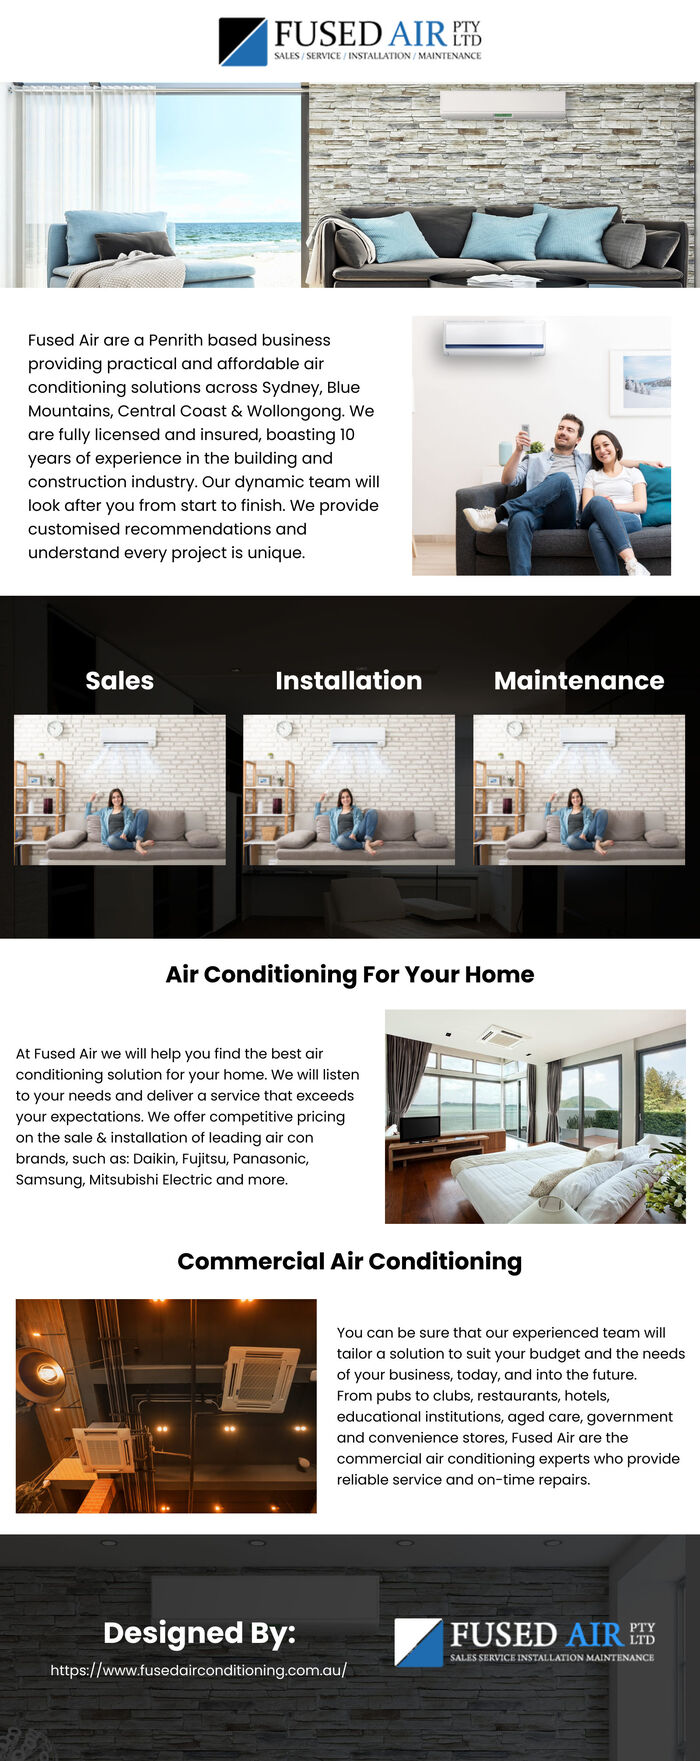 This infographic is designed by Fused Air